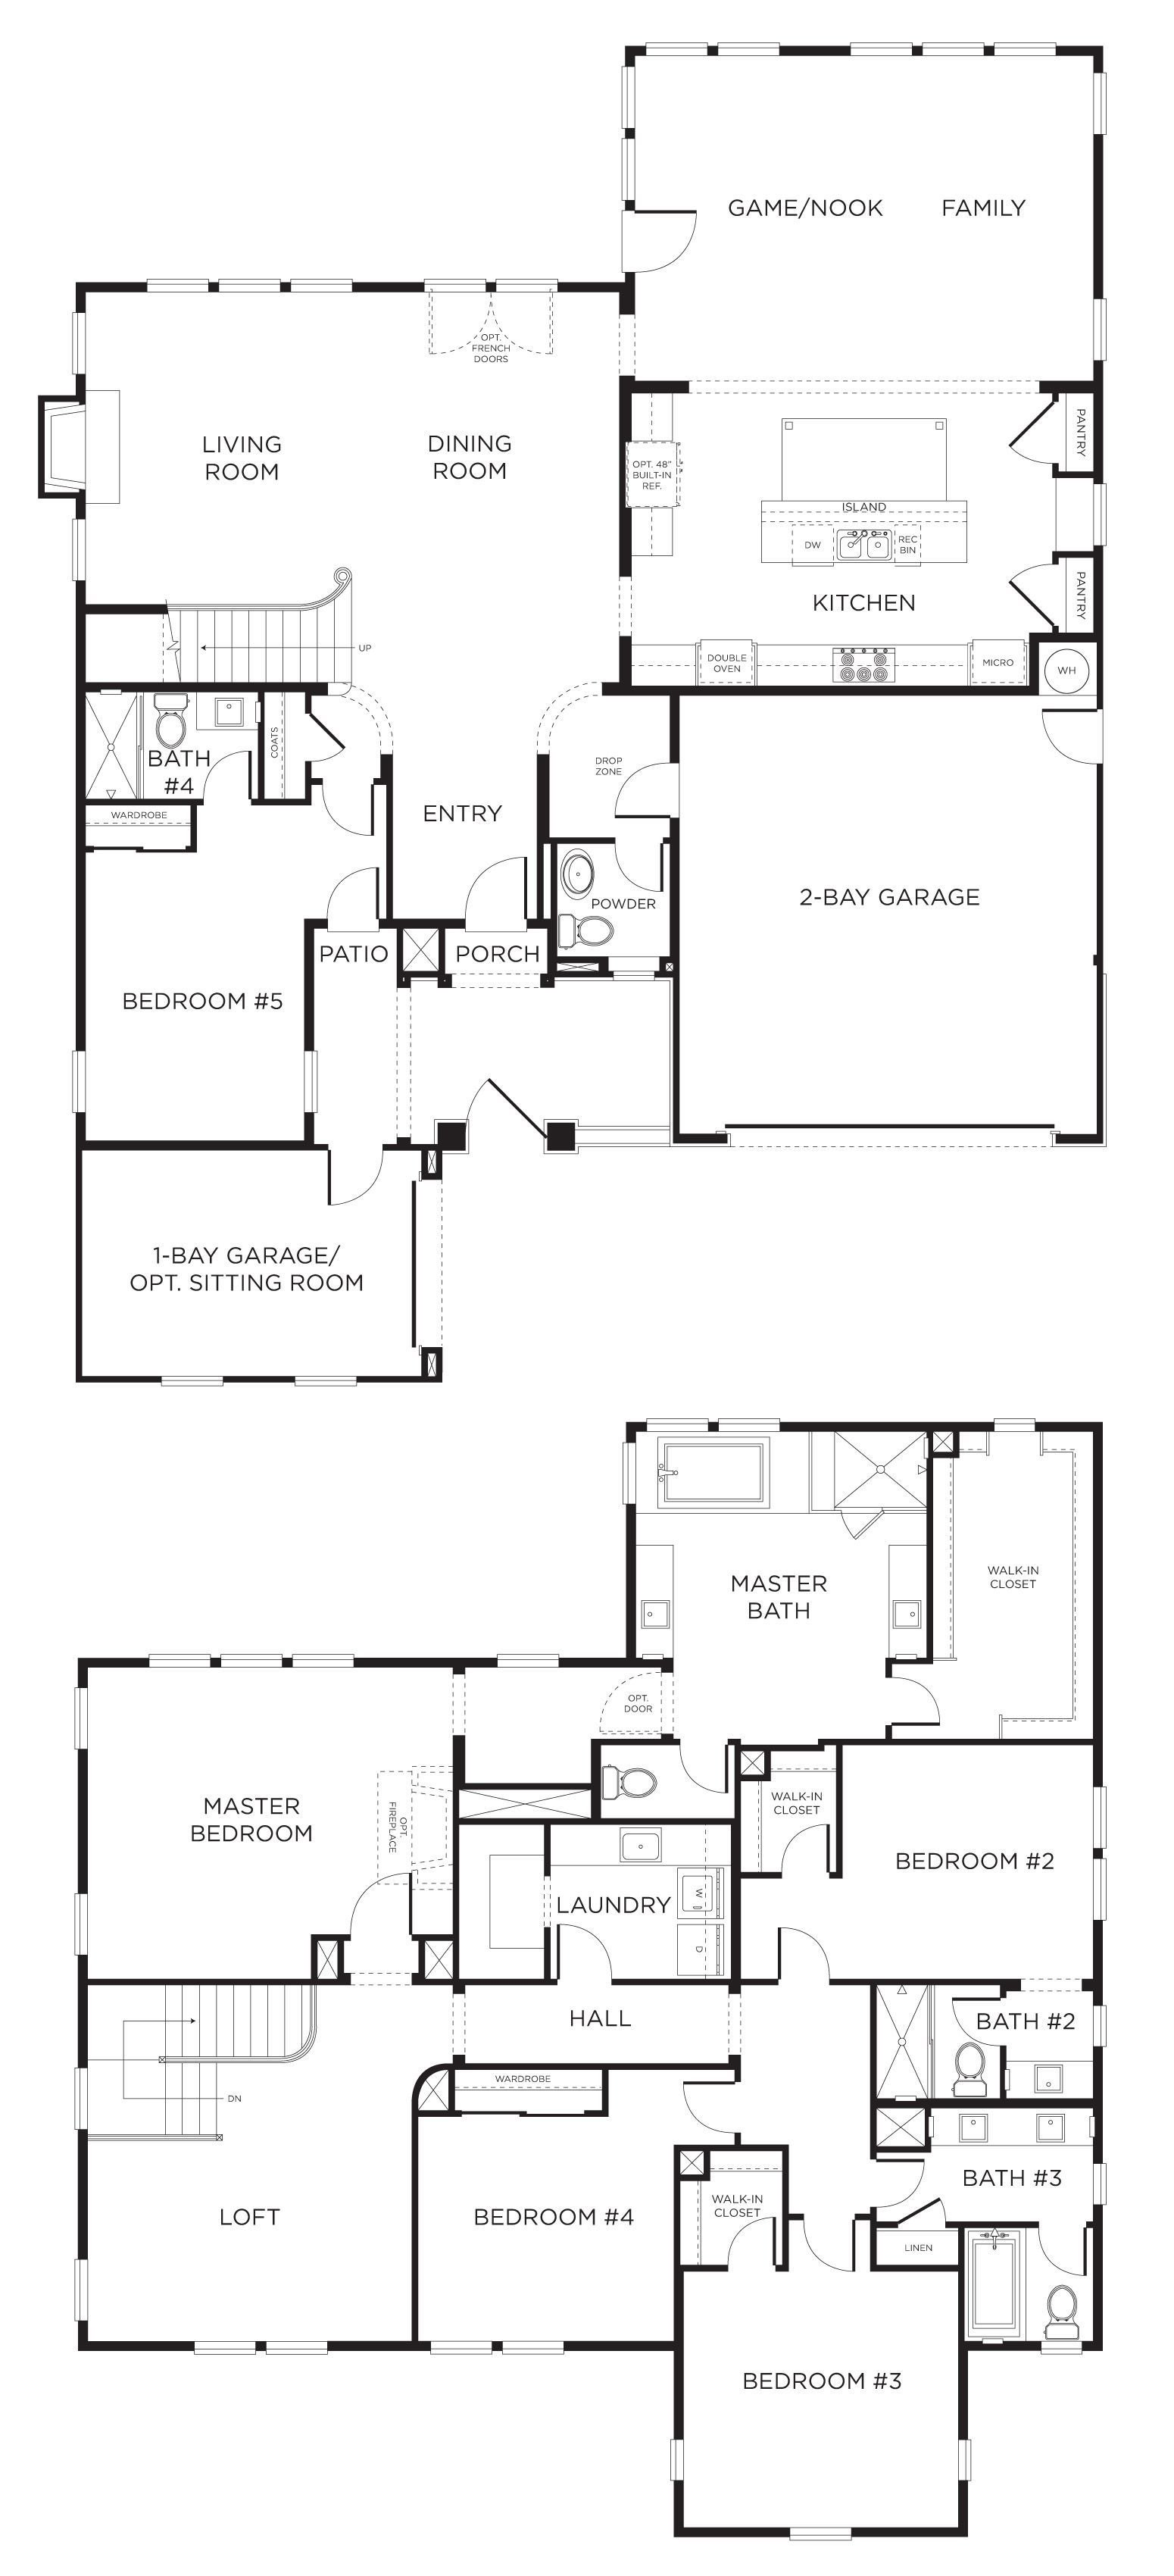 Best 5 Bedroom House Plan I D Move The 5Th Room Upstairs And With Pictures